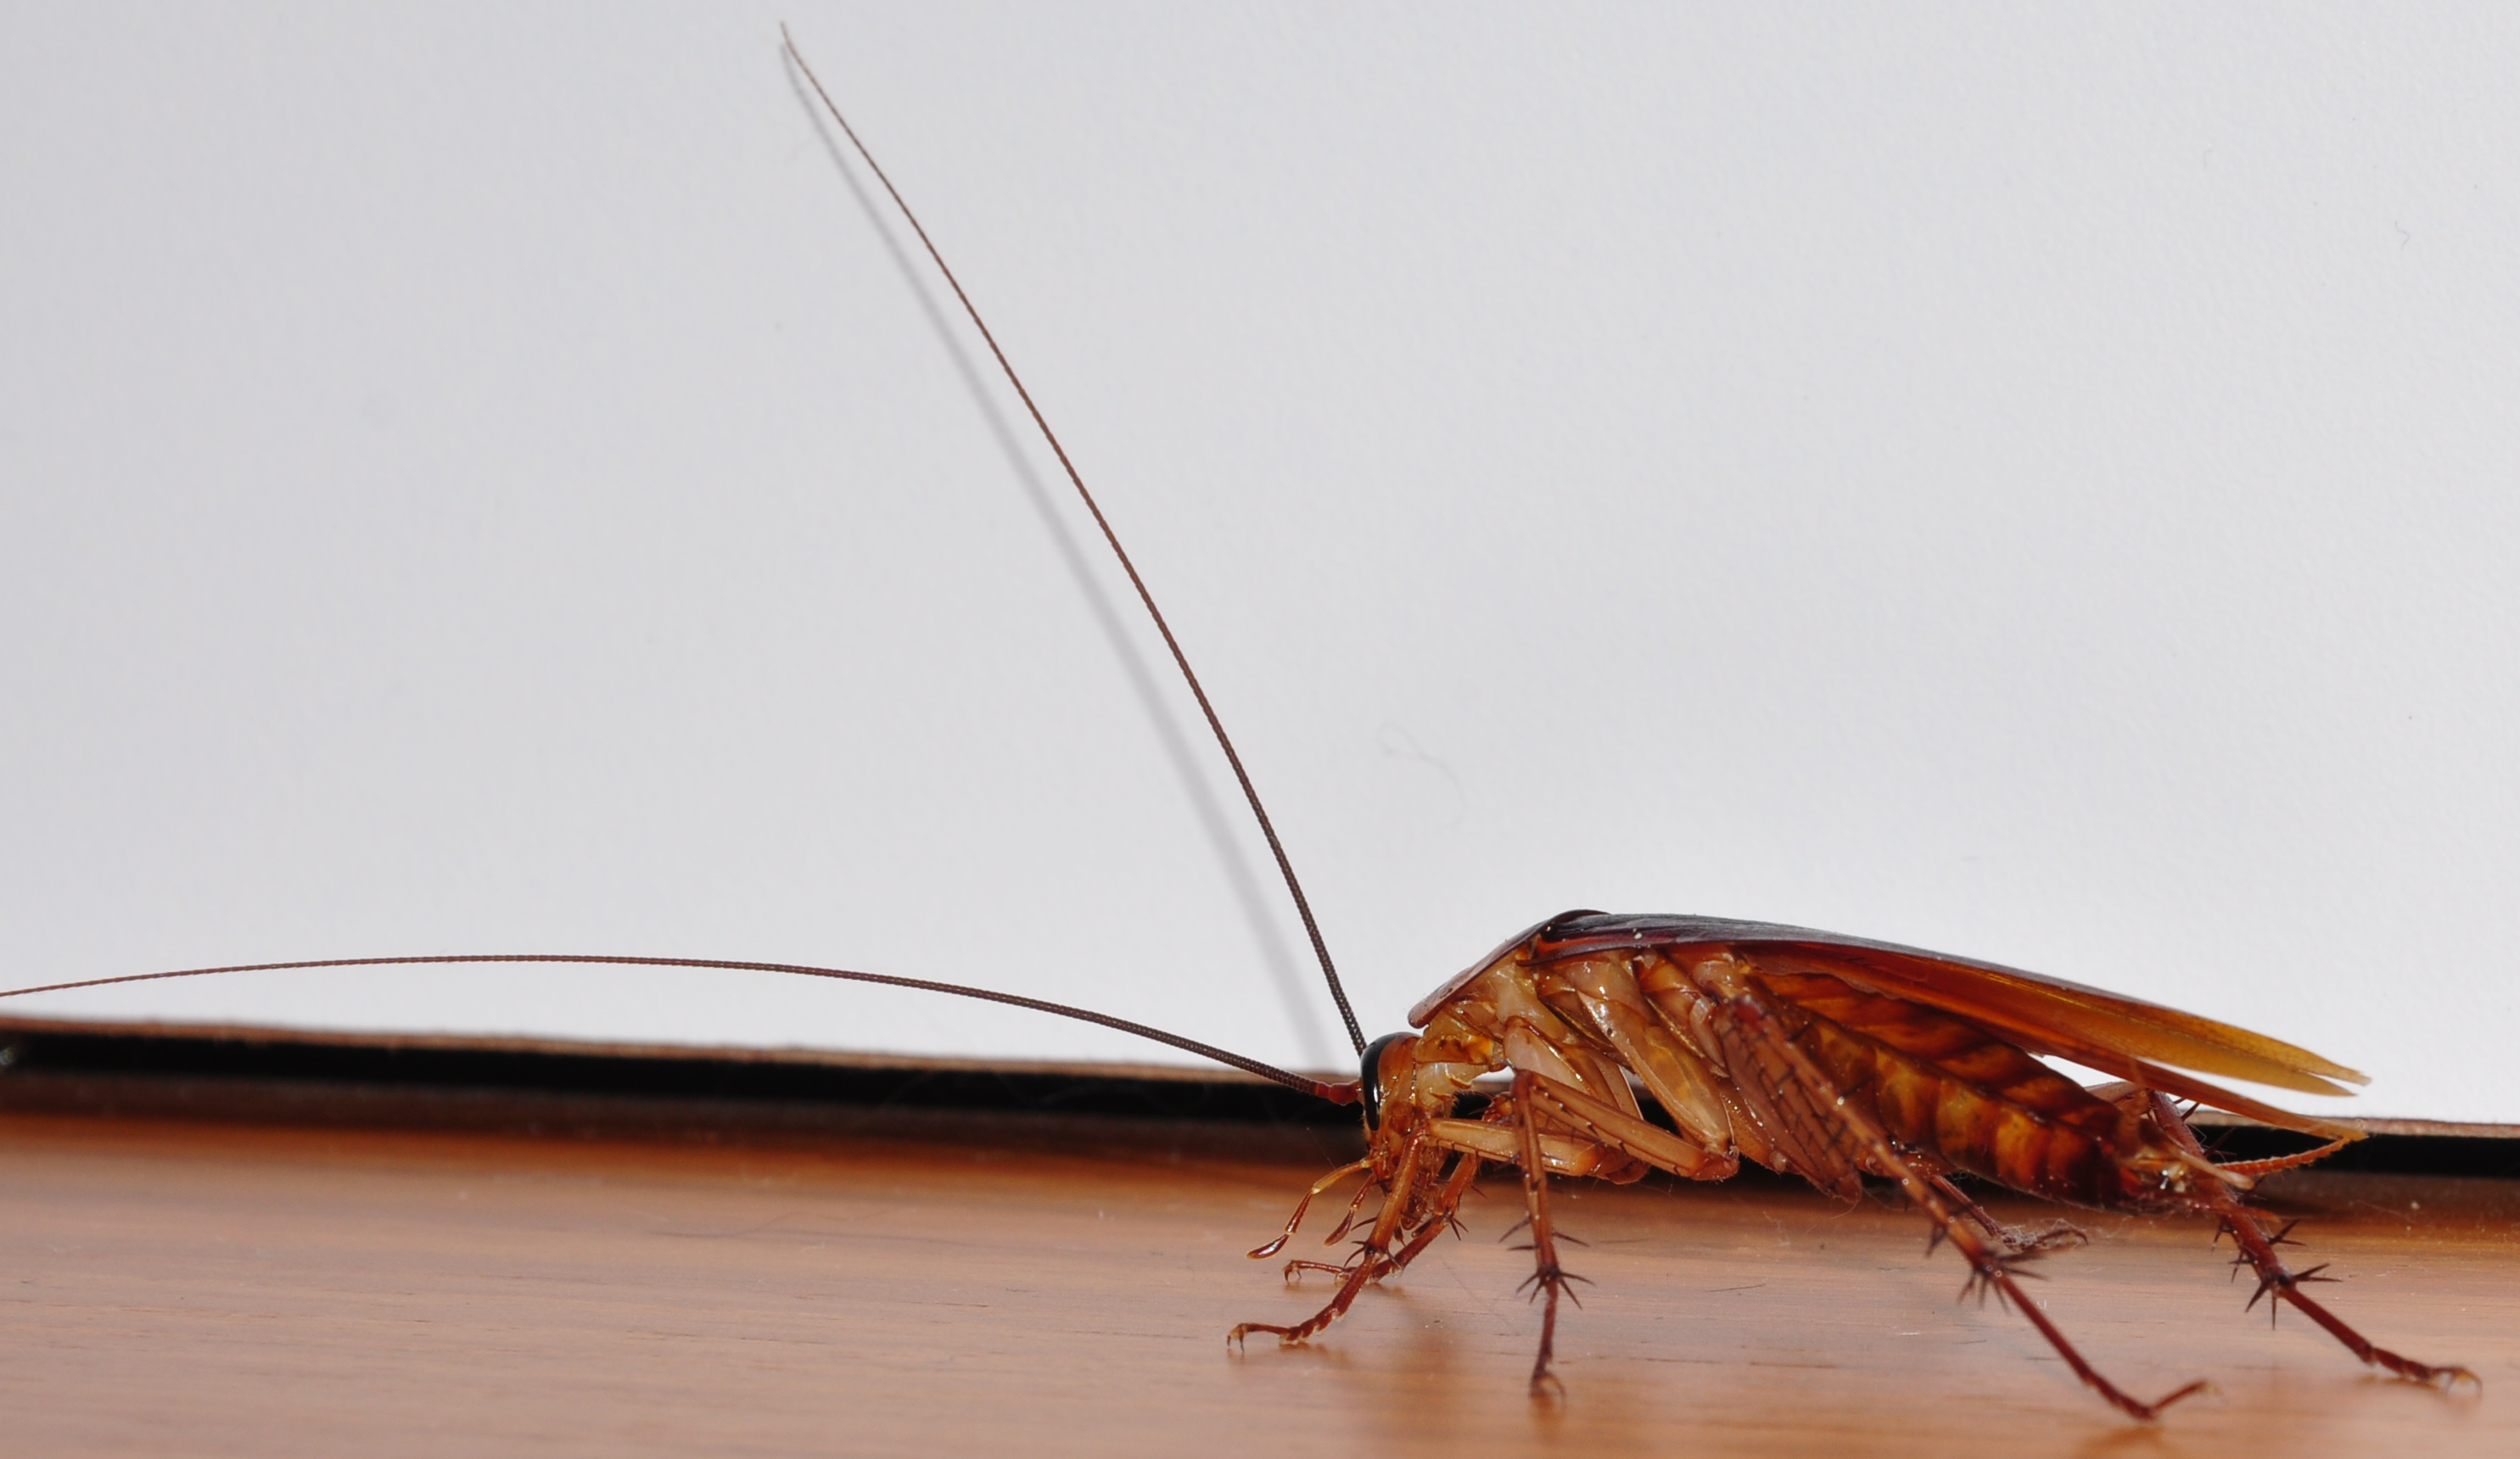 Description Cockroach-closeup-left-side.jpg